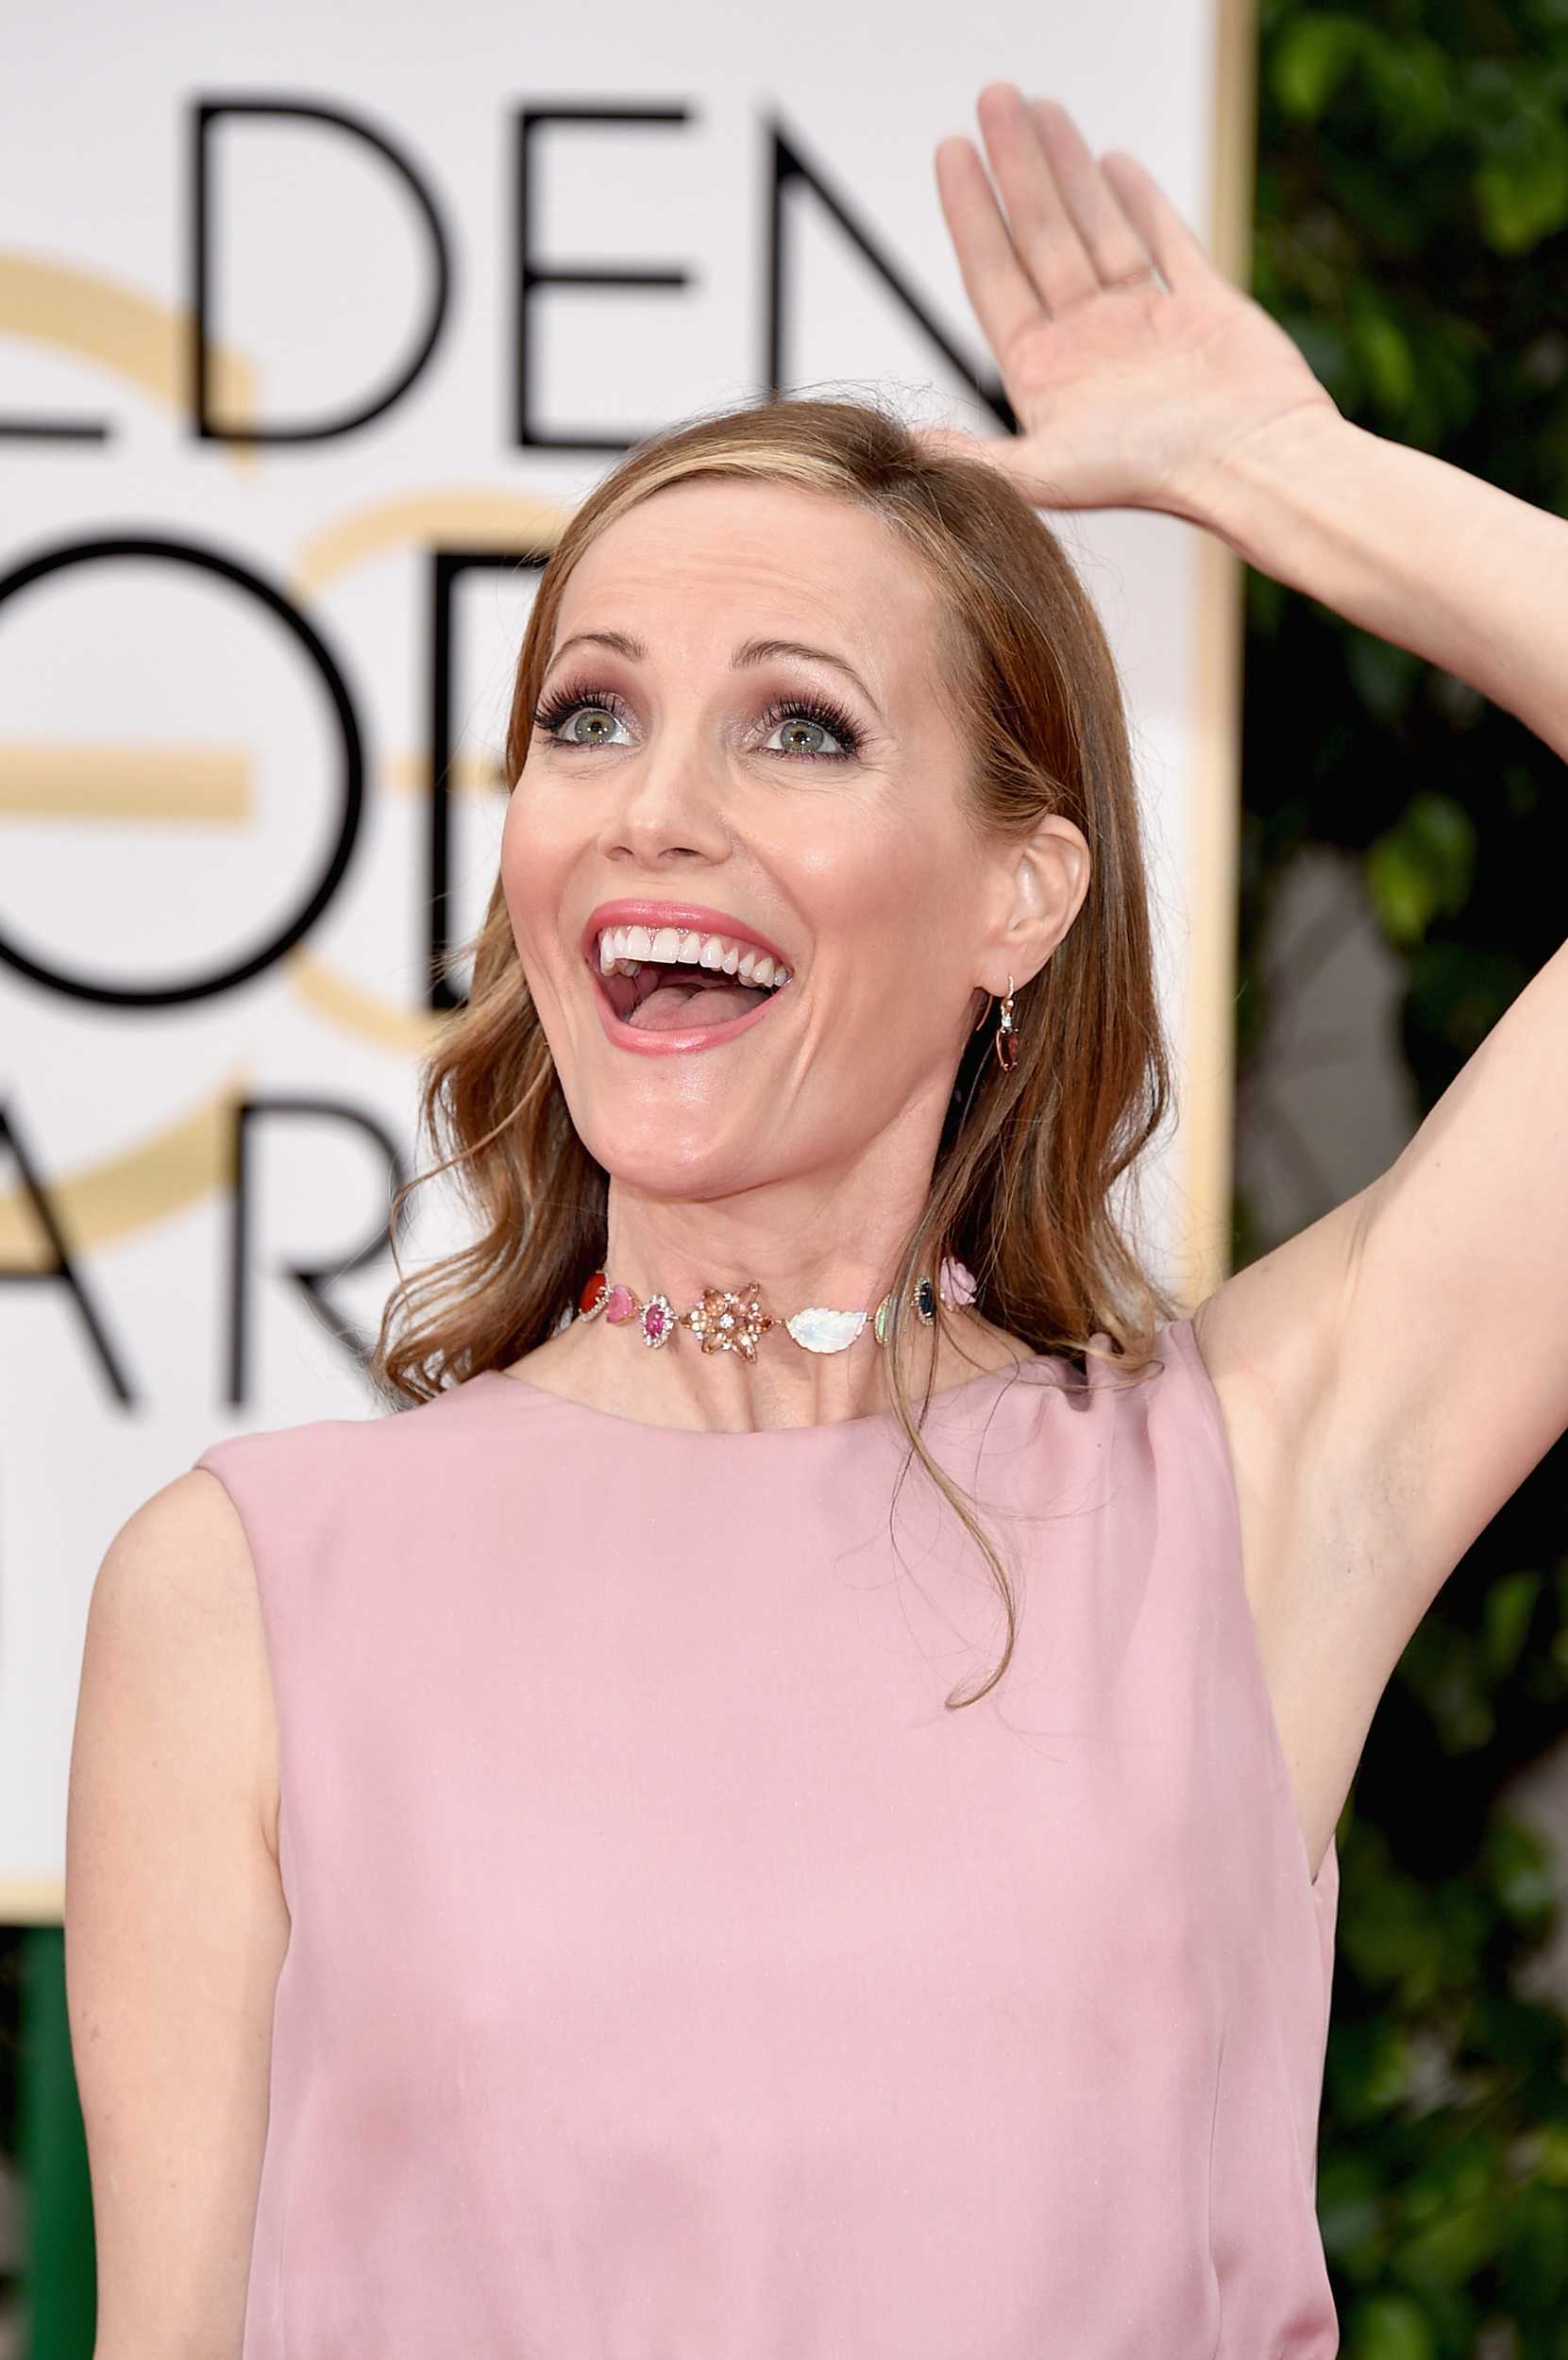 11 Things You (Probably) Don't Know About Leslie Mann